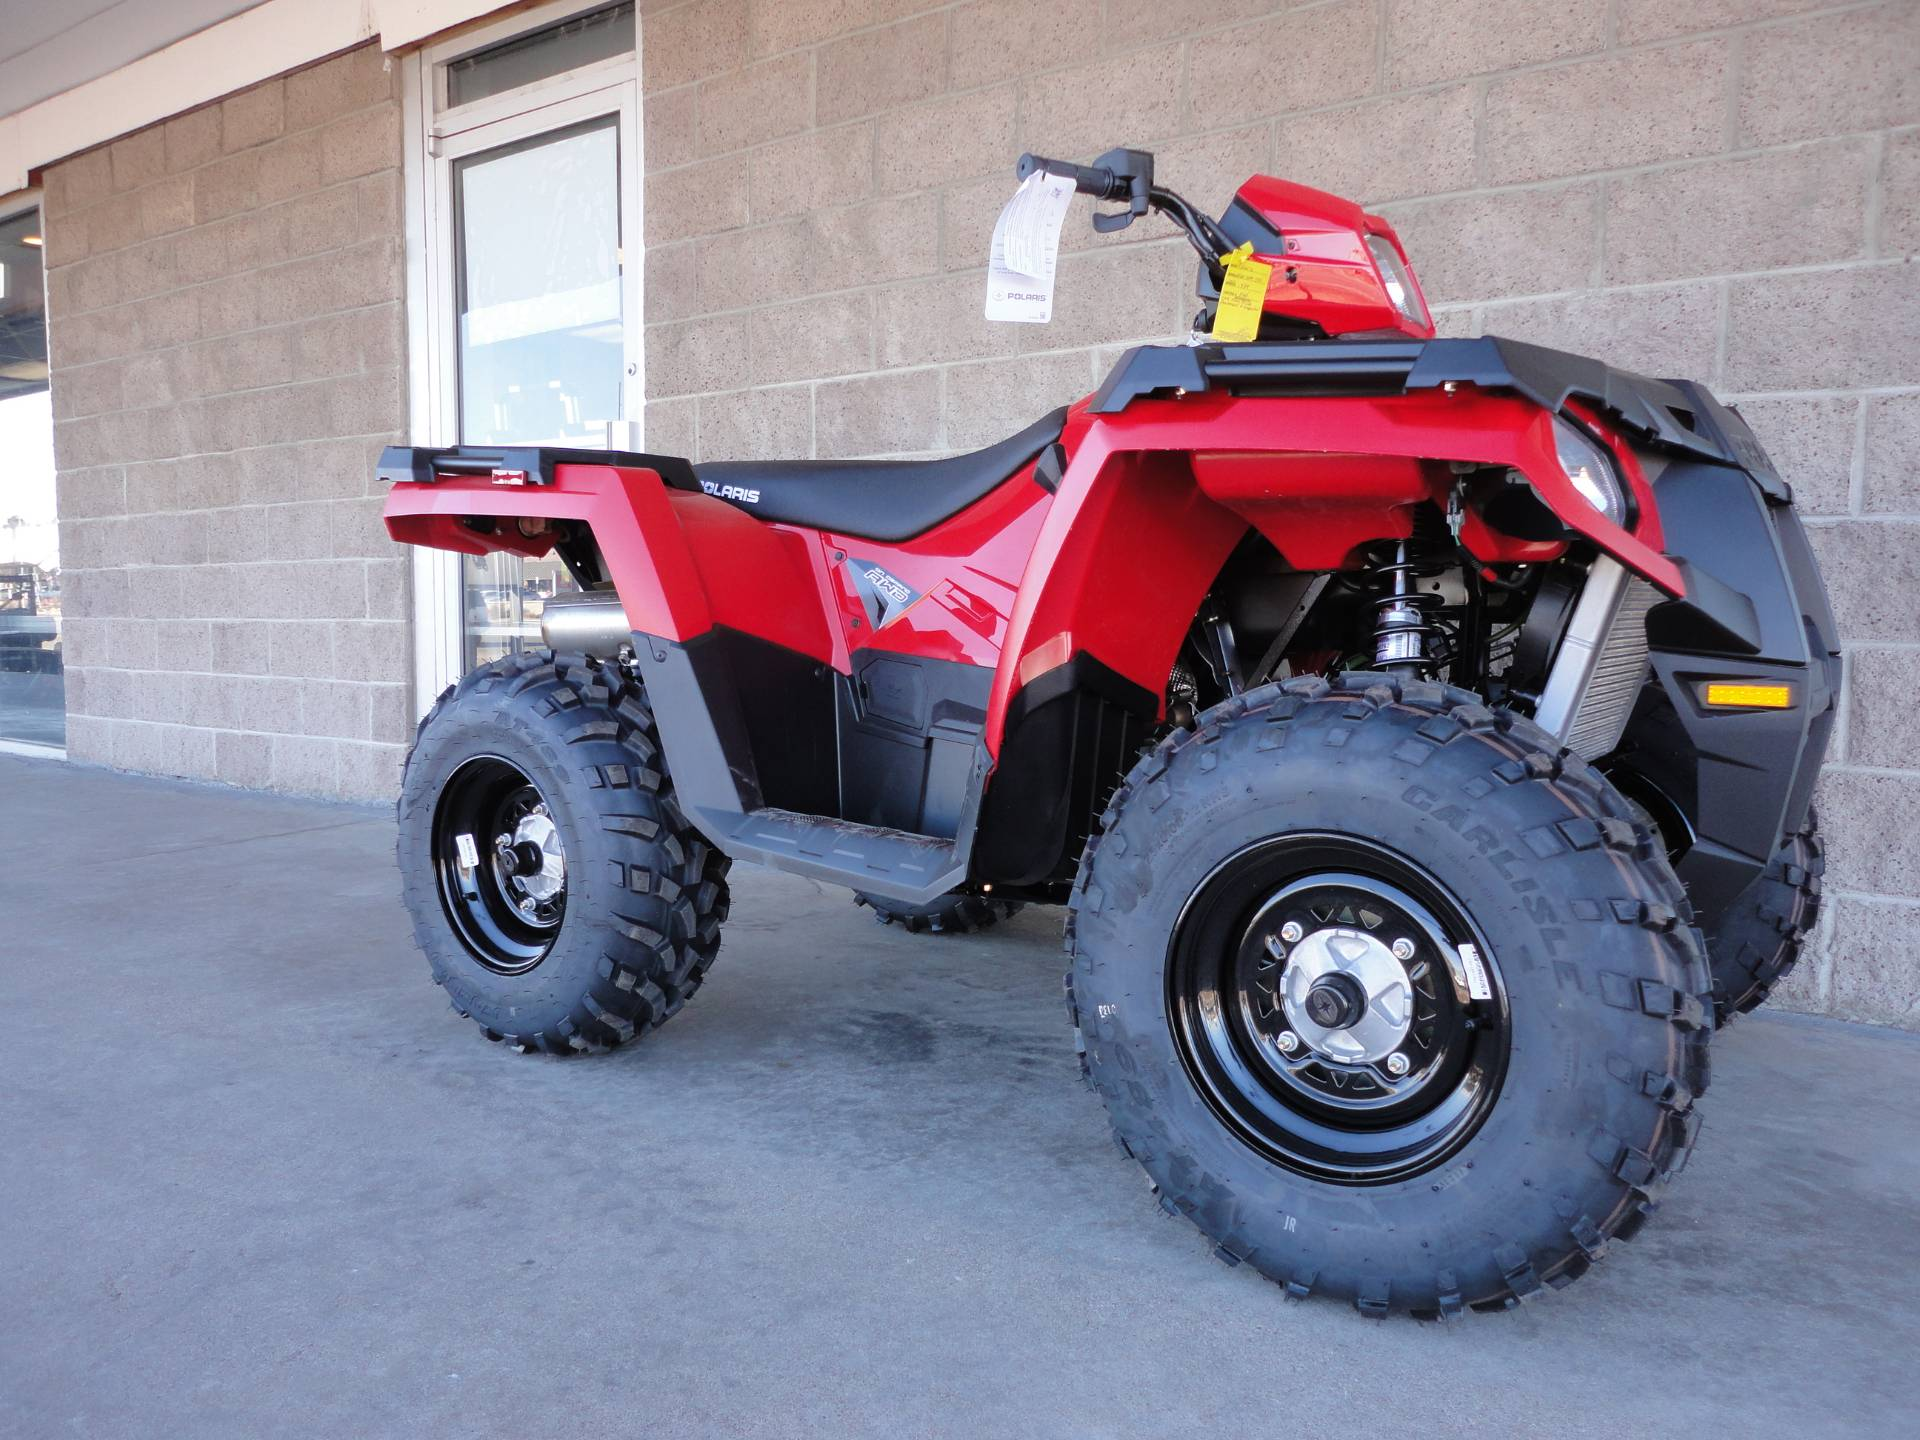 2020 Polaris Sportsman 570 in Denver, Colorado - Photo 21